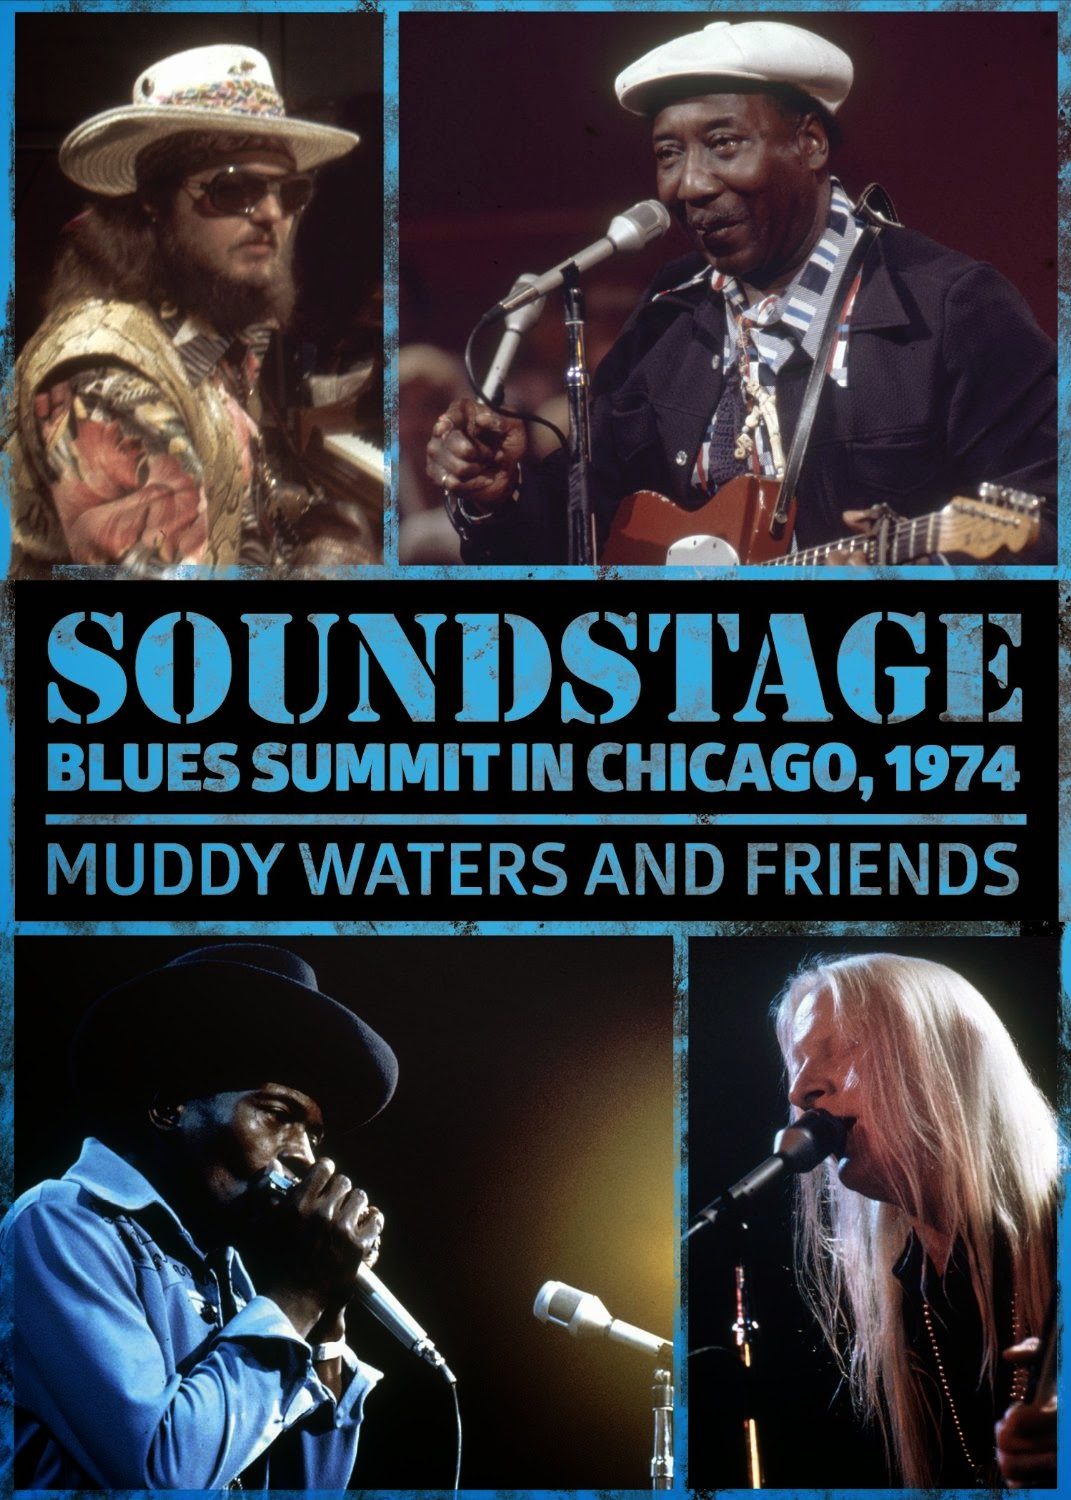 Soundstage: Blues Summit In Chicago, 1974 DVD